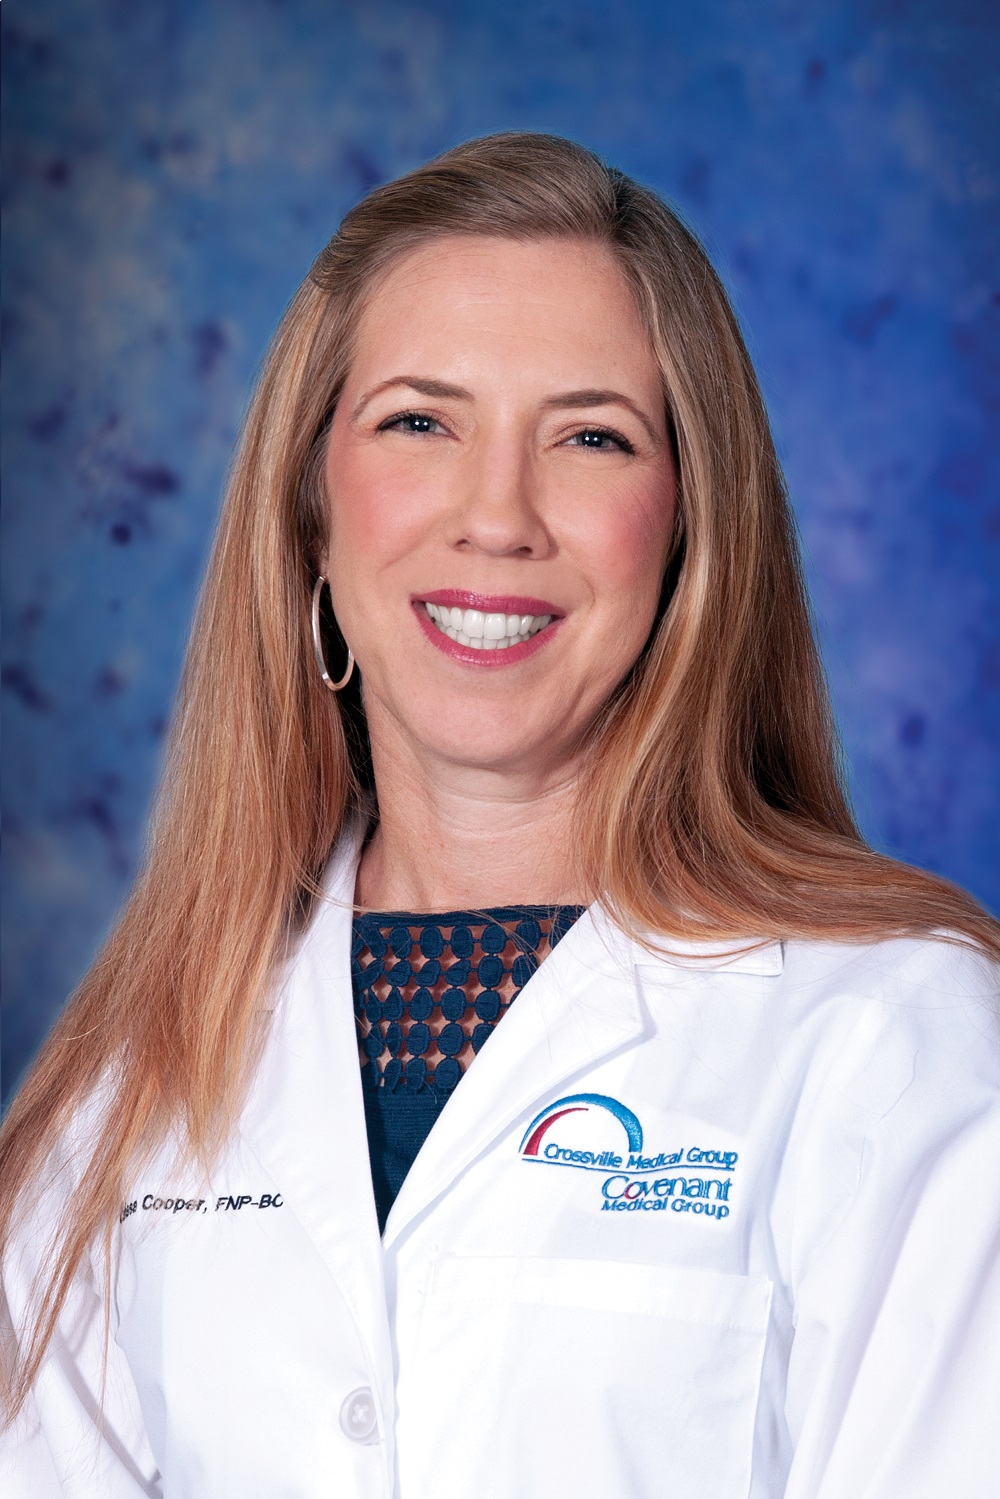 Carissa Cooper, FNP-BC is a member of the healthcare team at Cumberland Diabetes Center.